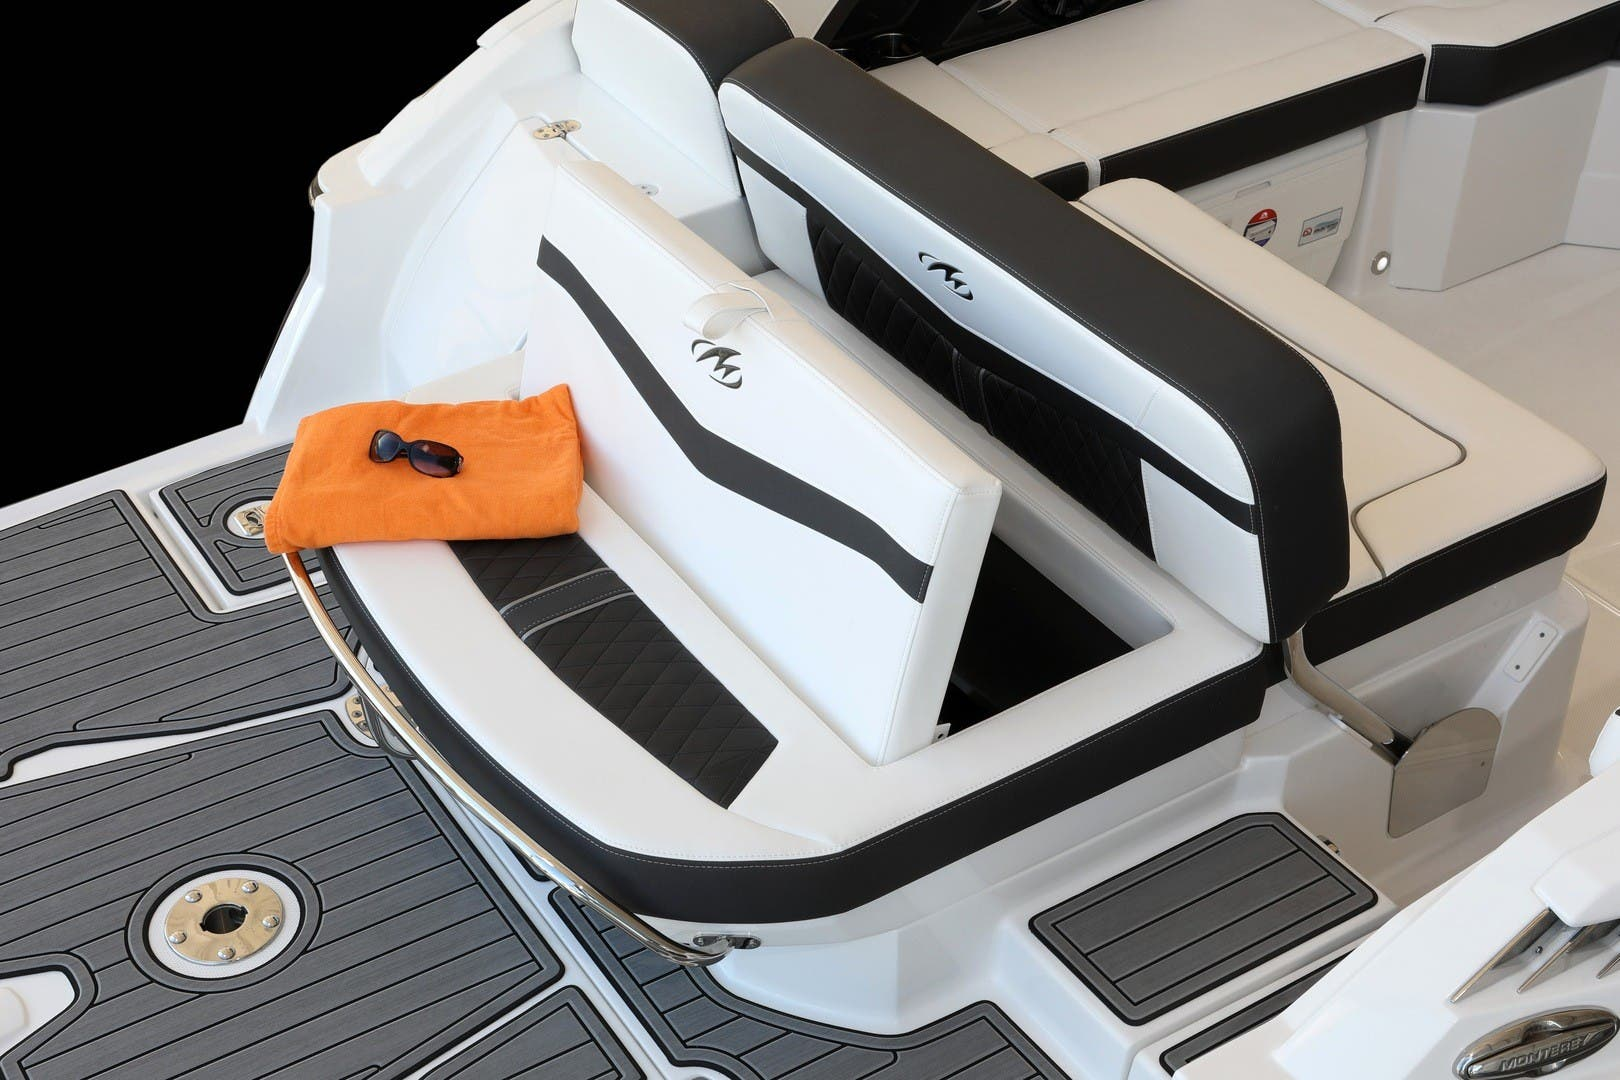 2021 Monterey boat for sale, model of the boat is 258ss & Image # 8 of 9